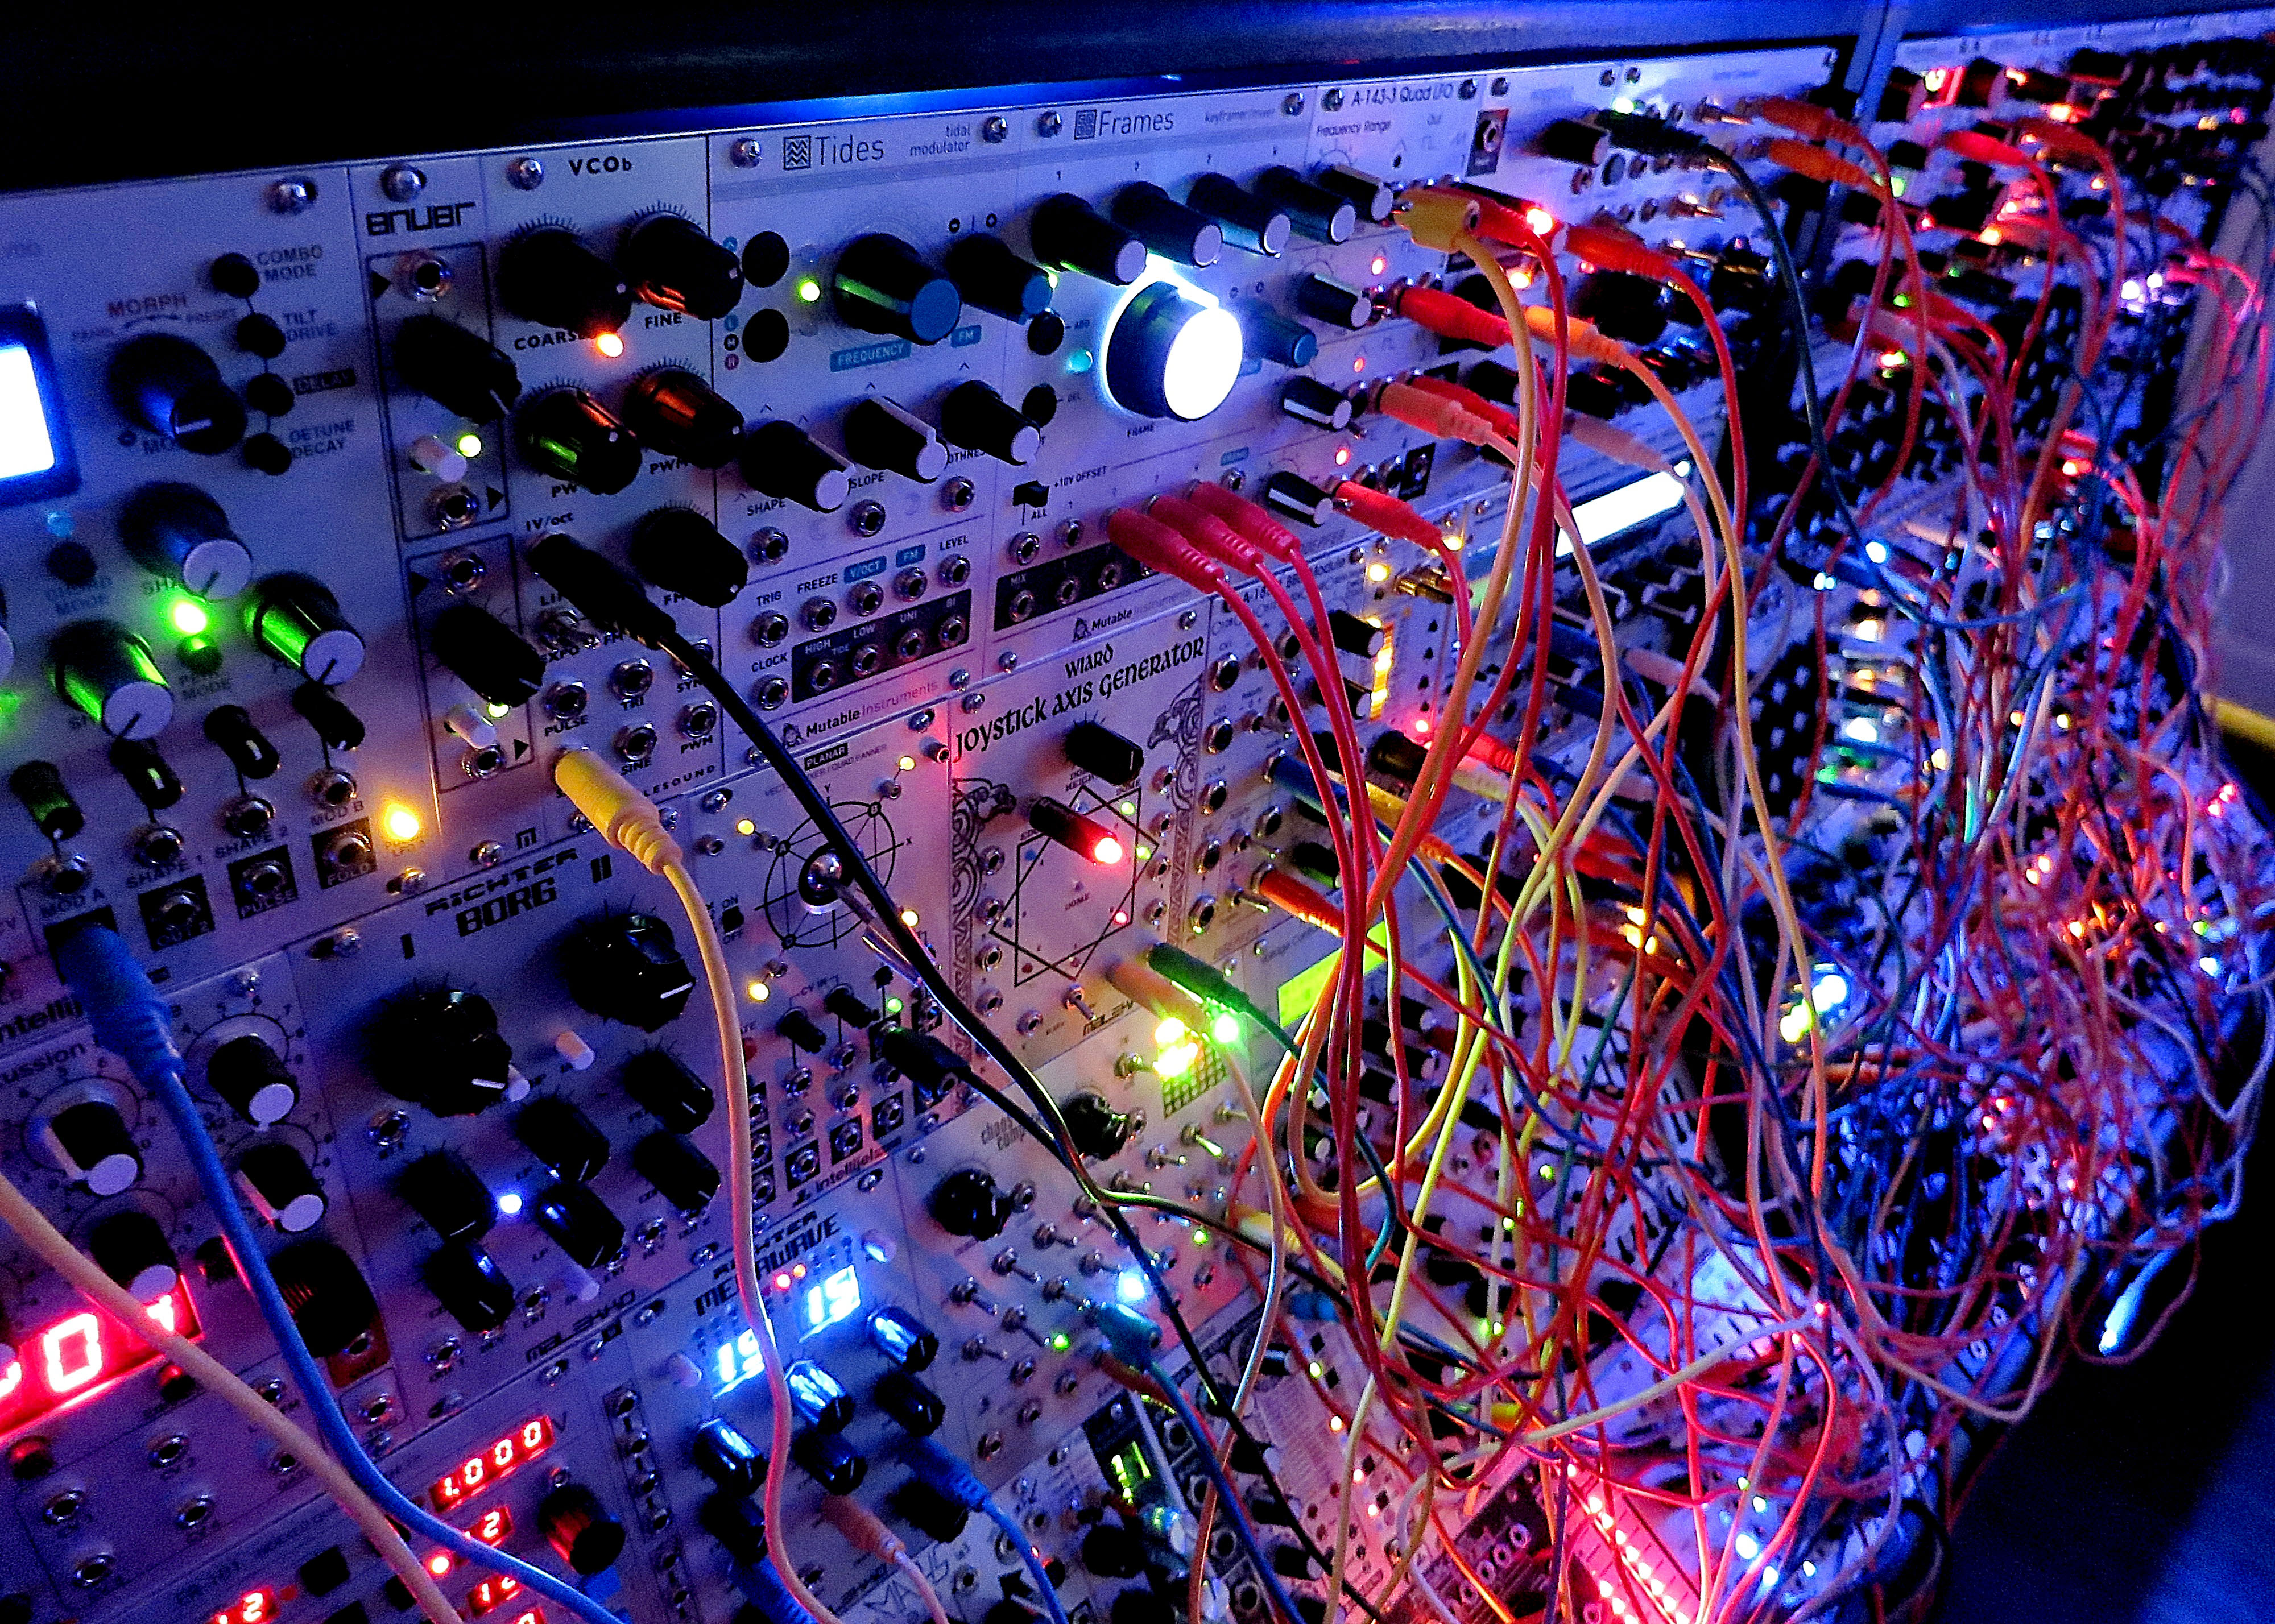 ridiculously gigantic modular synth rig playing some wicked arabic sounding jams demonic. Black Bedroom Furniture Sets. Home Design Ideas